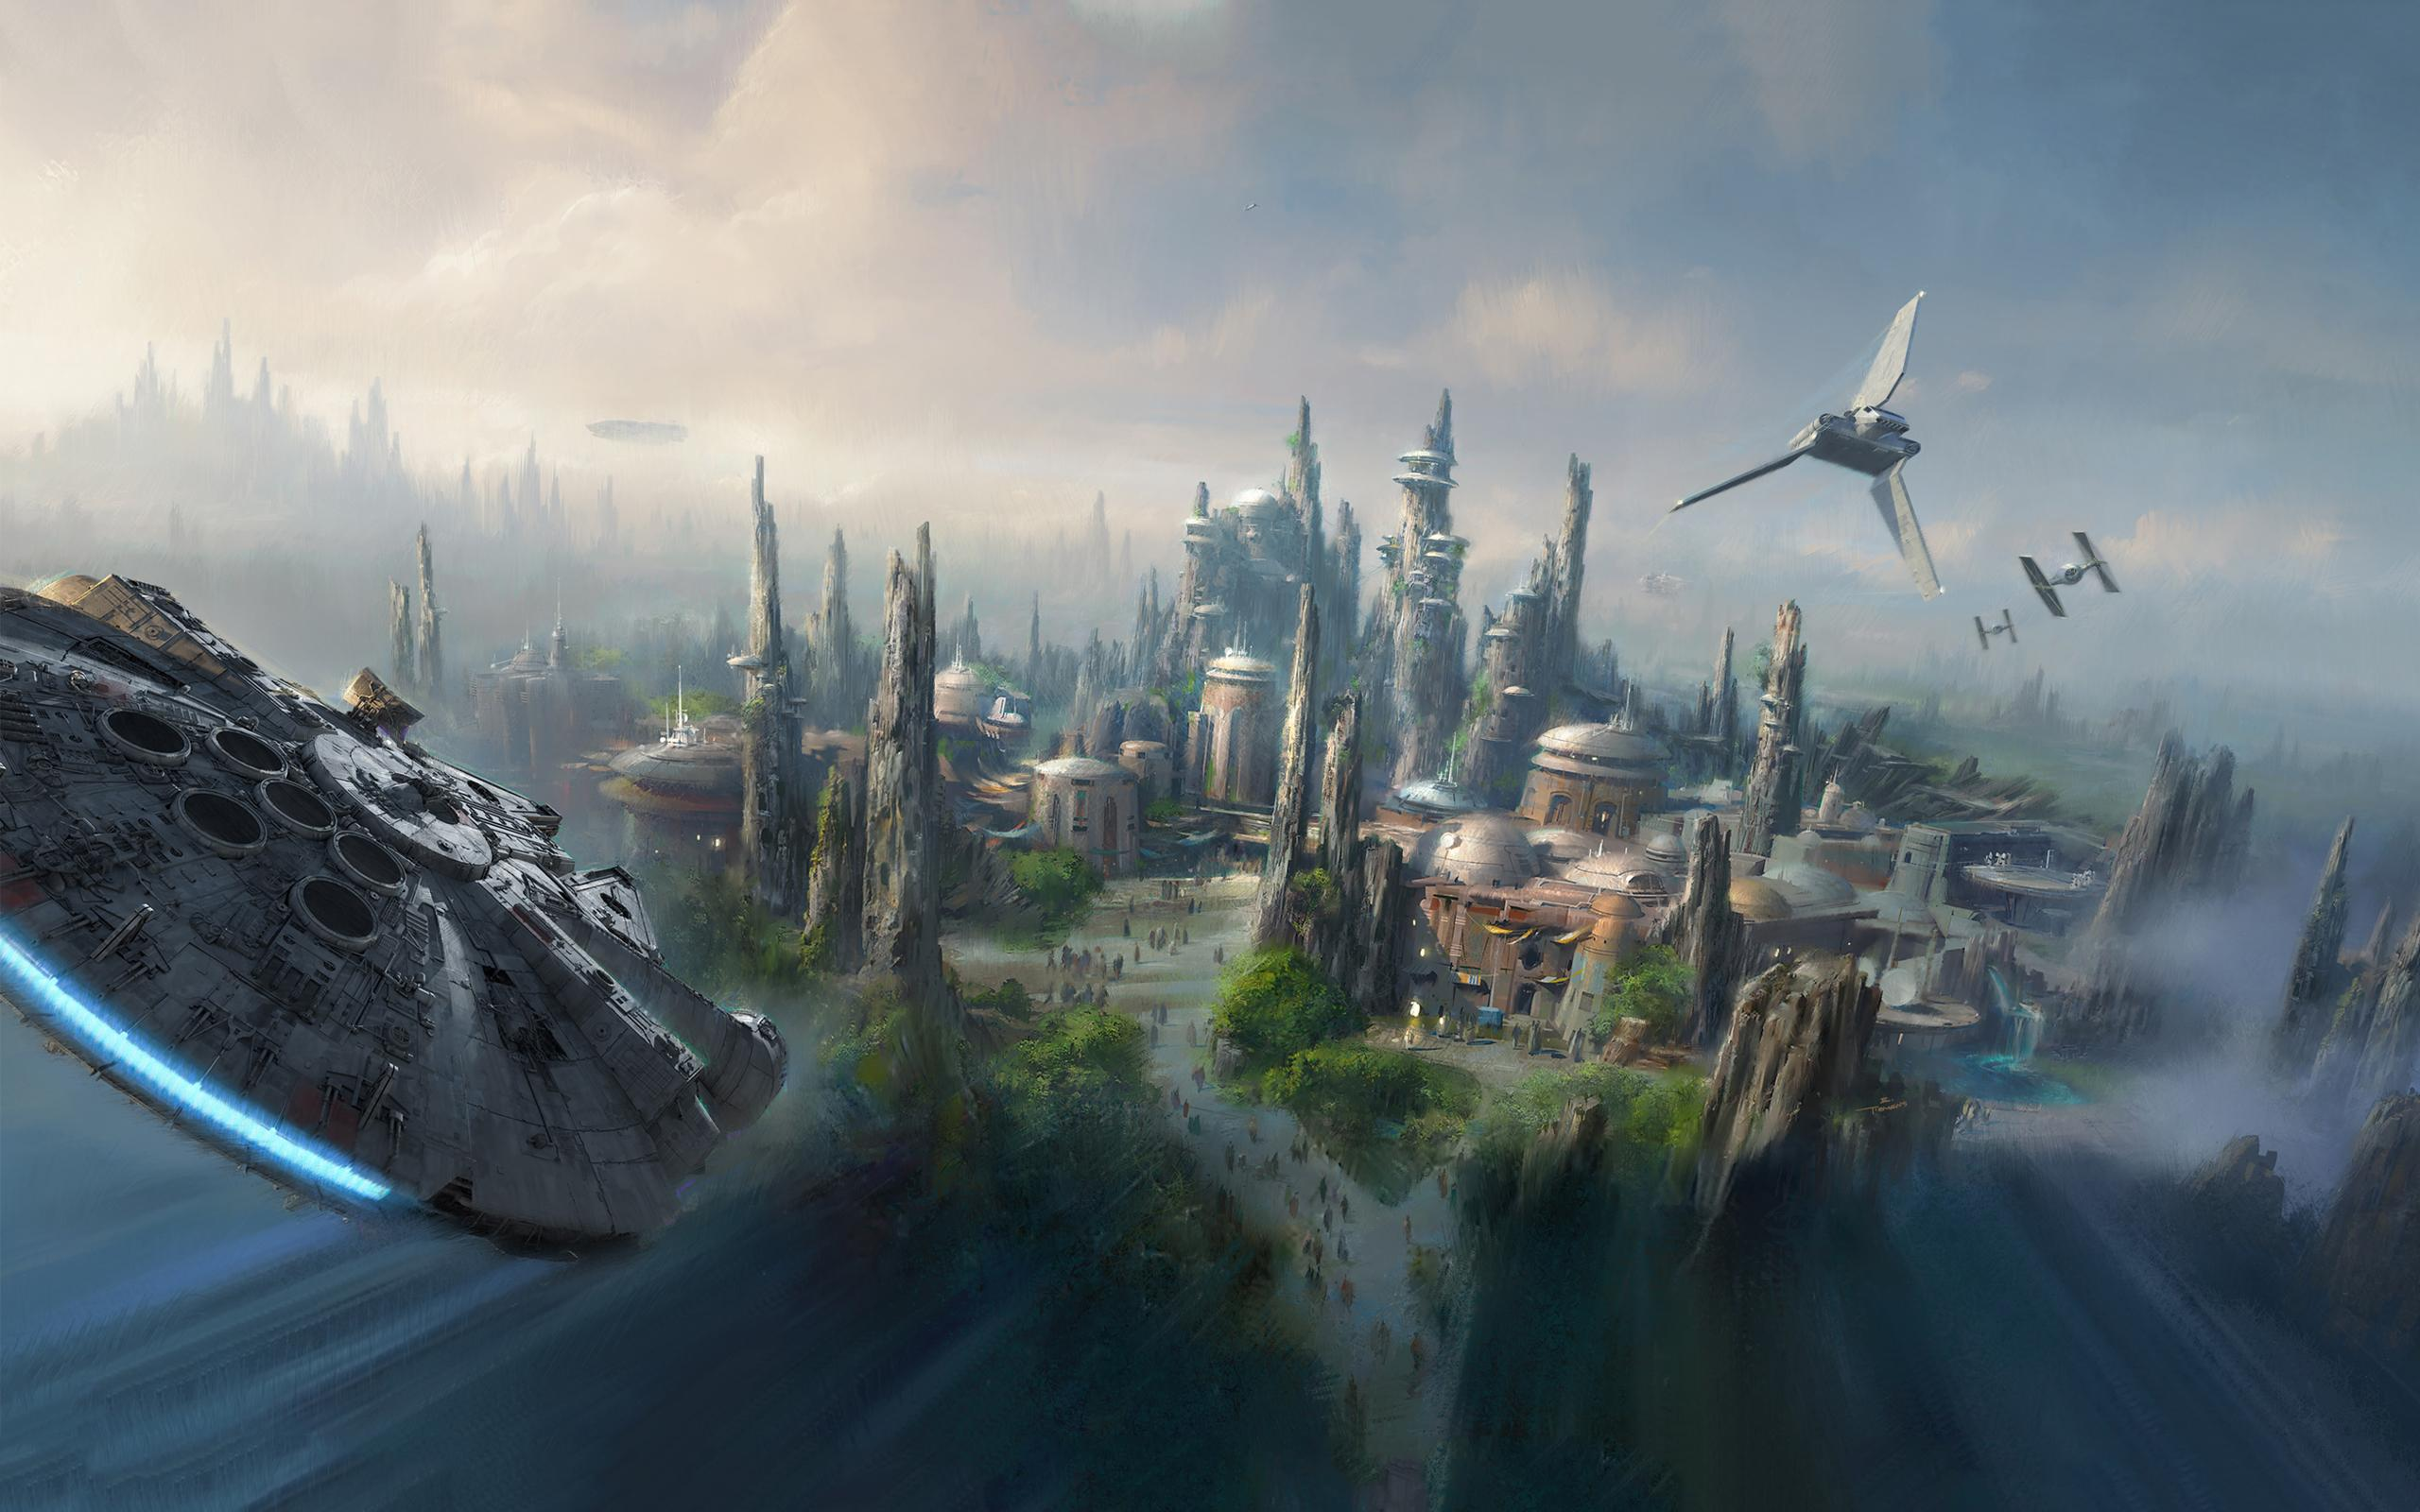 Disney Star Wars Land Artist Rendering Hd Wallpaper